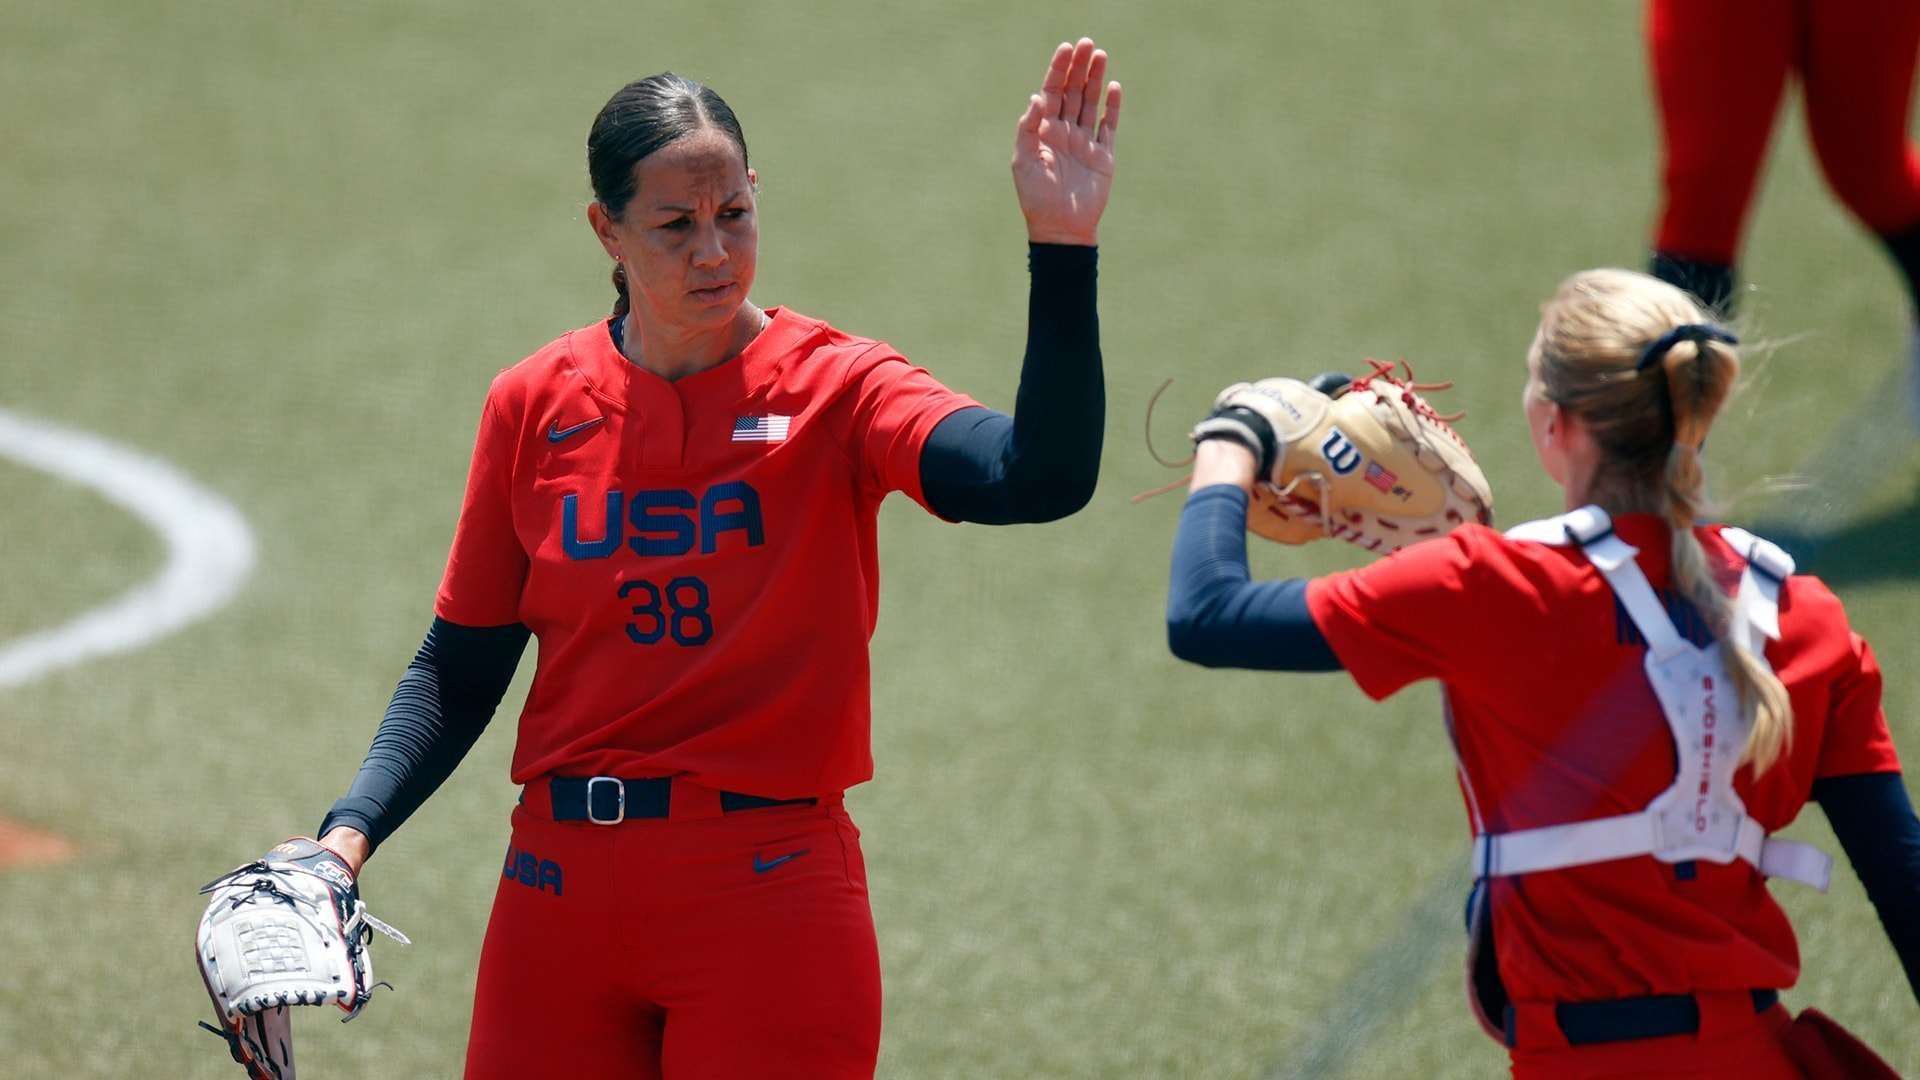 Image for U.S. shuts out Italy in Olympic softball opener